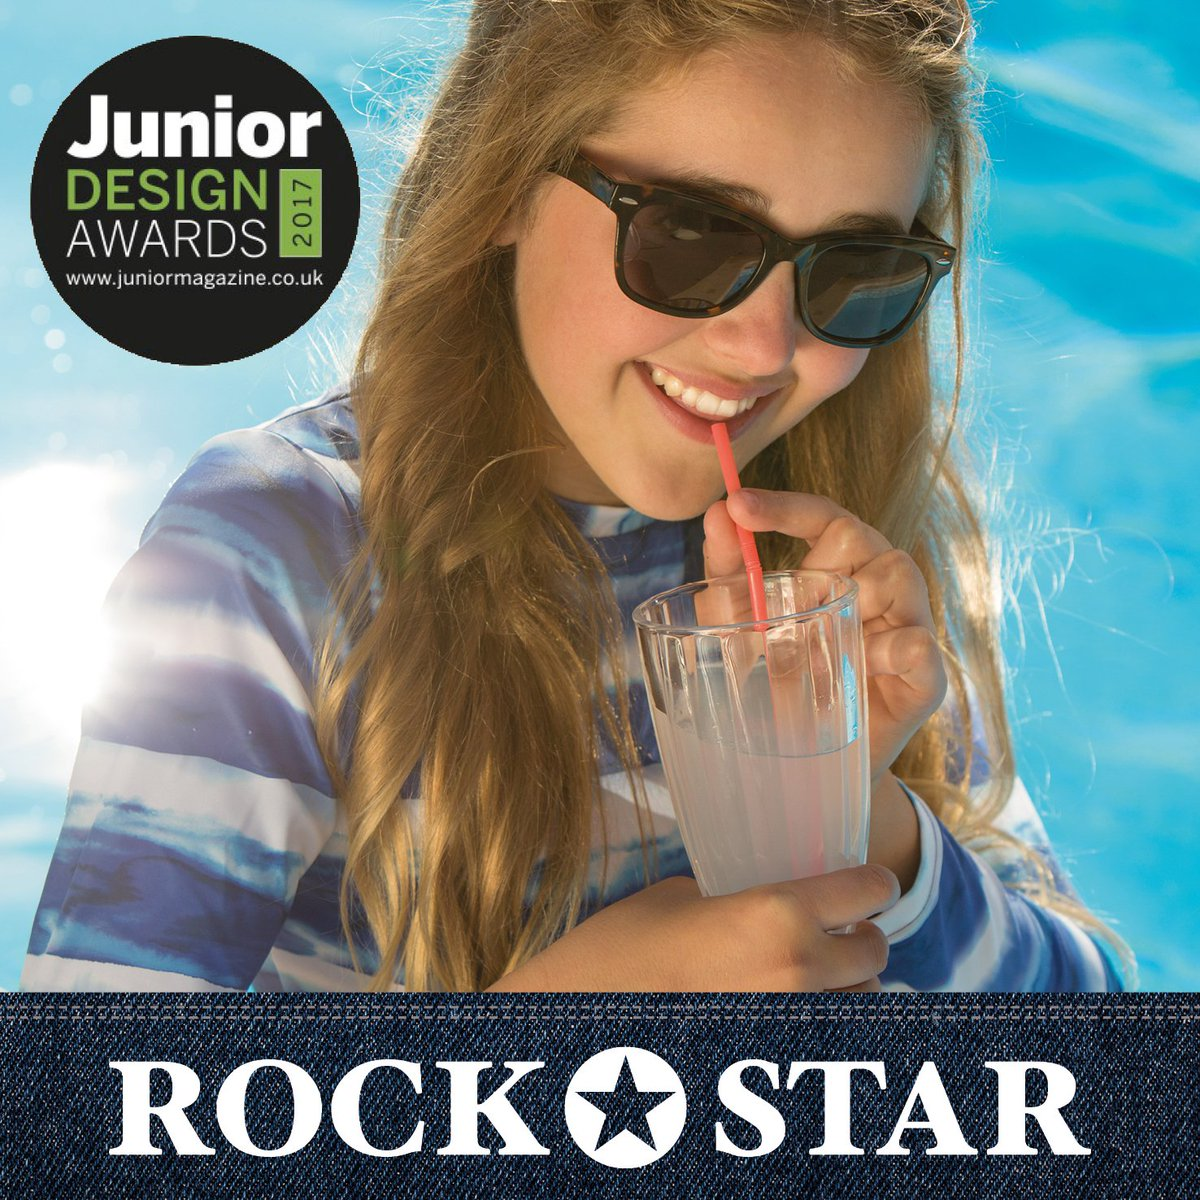 Rock Star delivers the hottest mini-celeb looks while inspiring individual style and self-confidence.  http:// bit.ly/2RSSun  &nbsp;   #Rockstar #sun <br>http://pic.twitter.com/ErwLN9Ab8Q